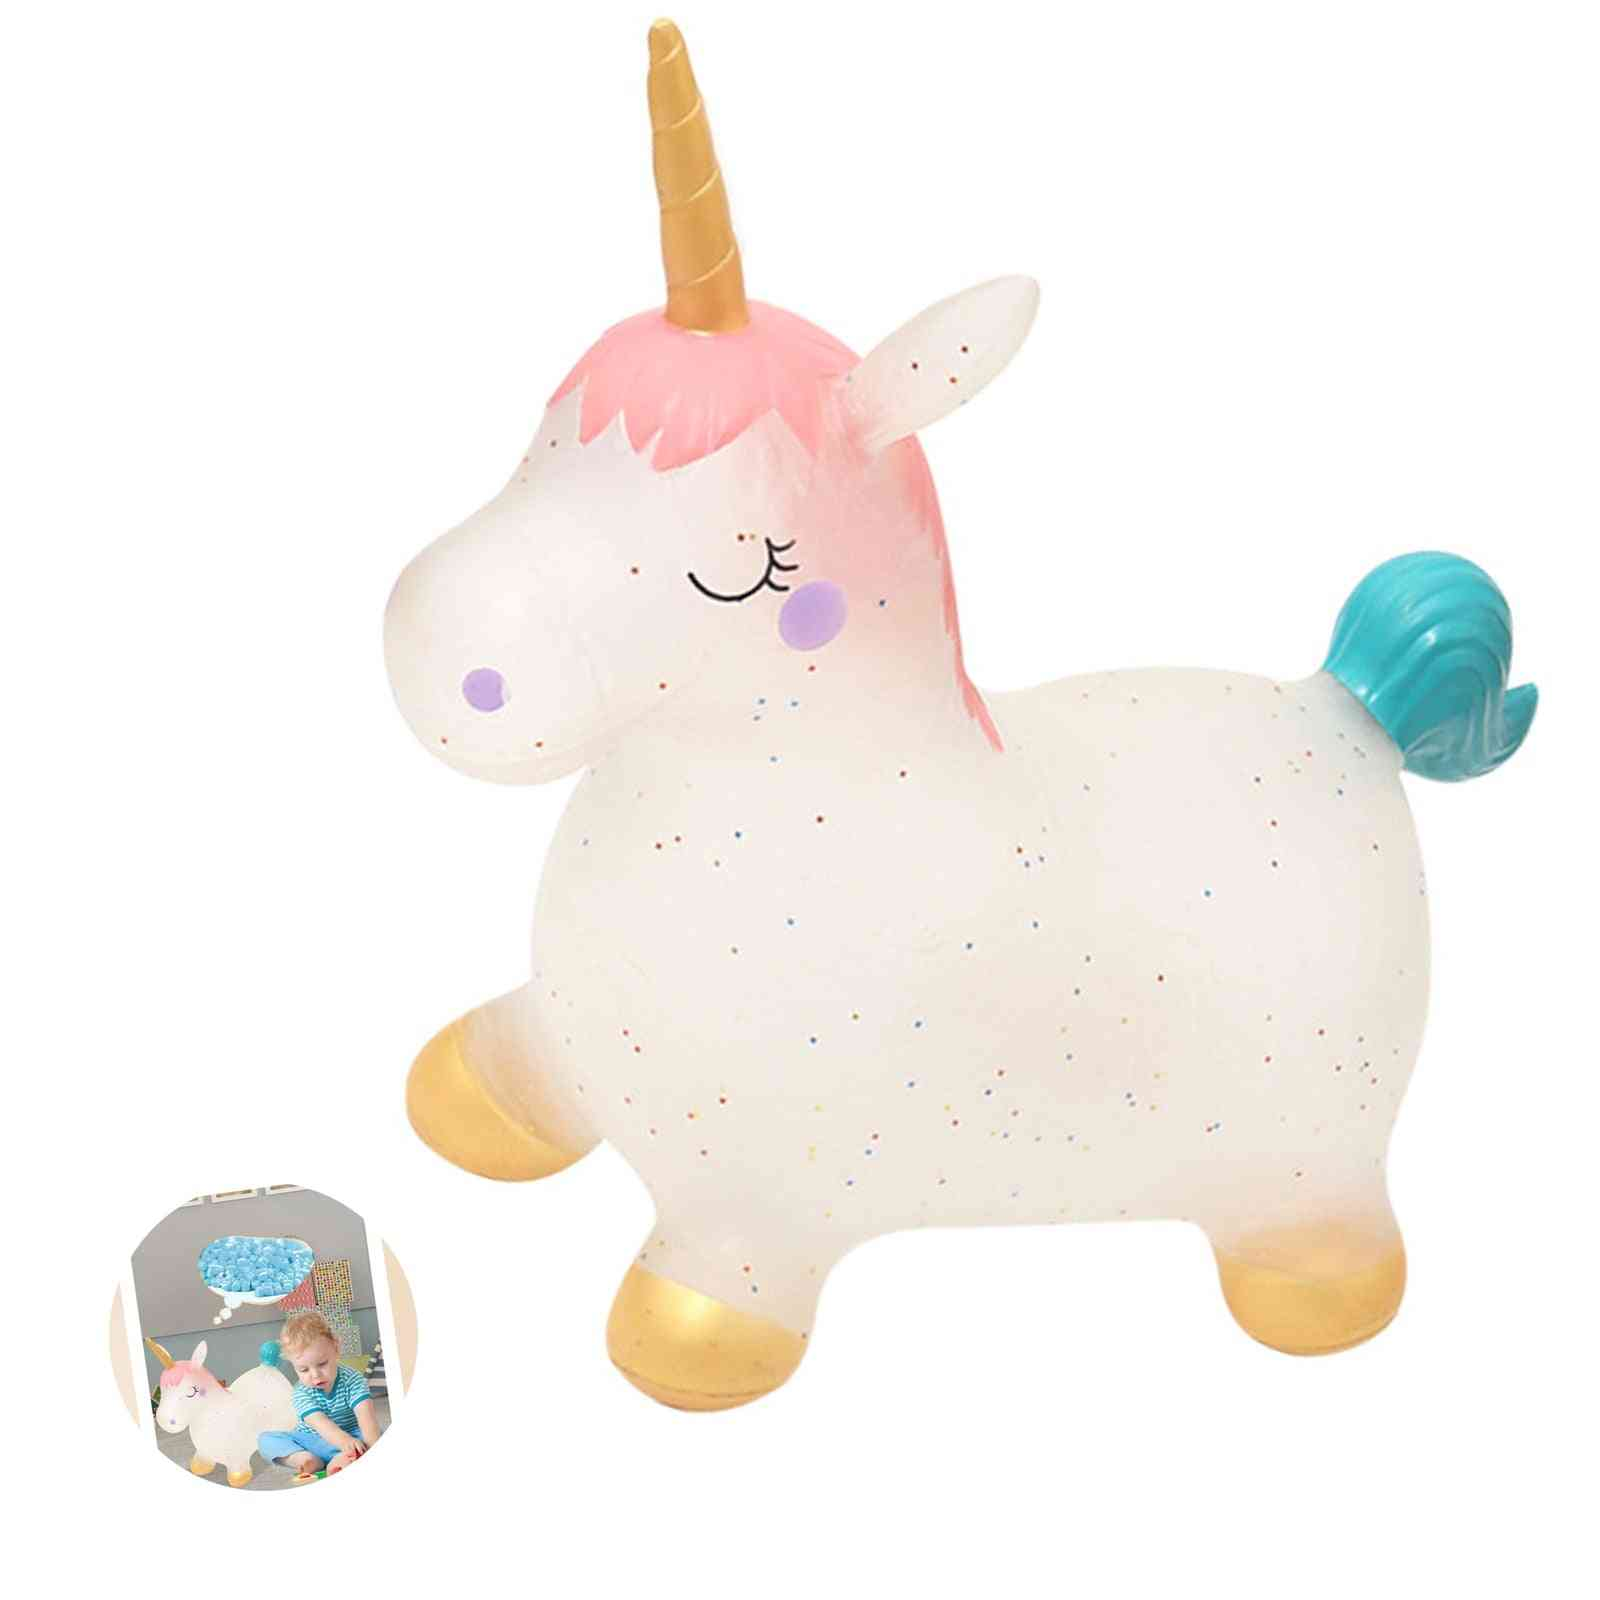 Cute Baby Inflatable Lovely Unicorn Toy With Outdoor Sports Games Toy